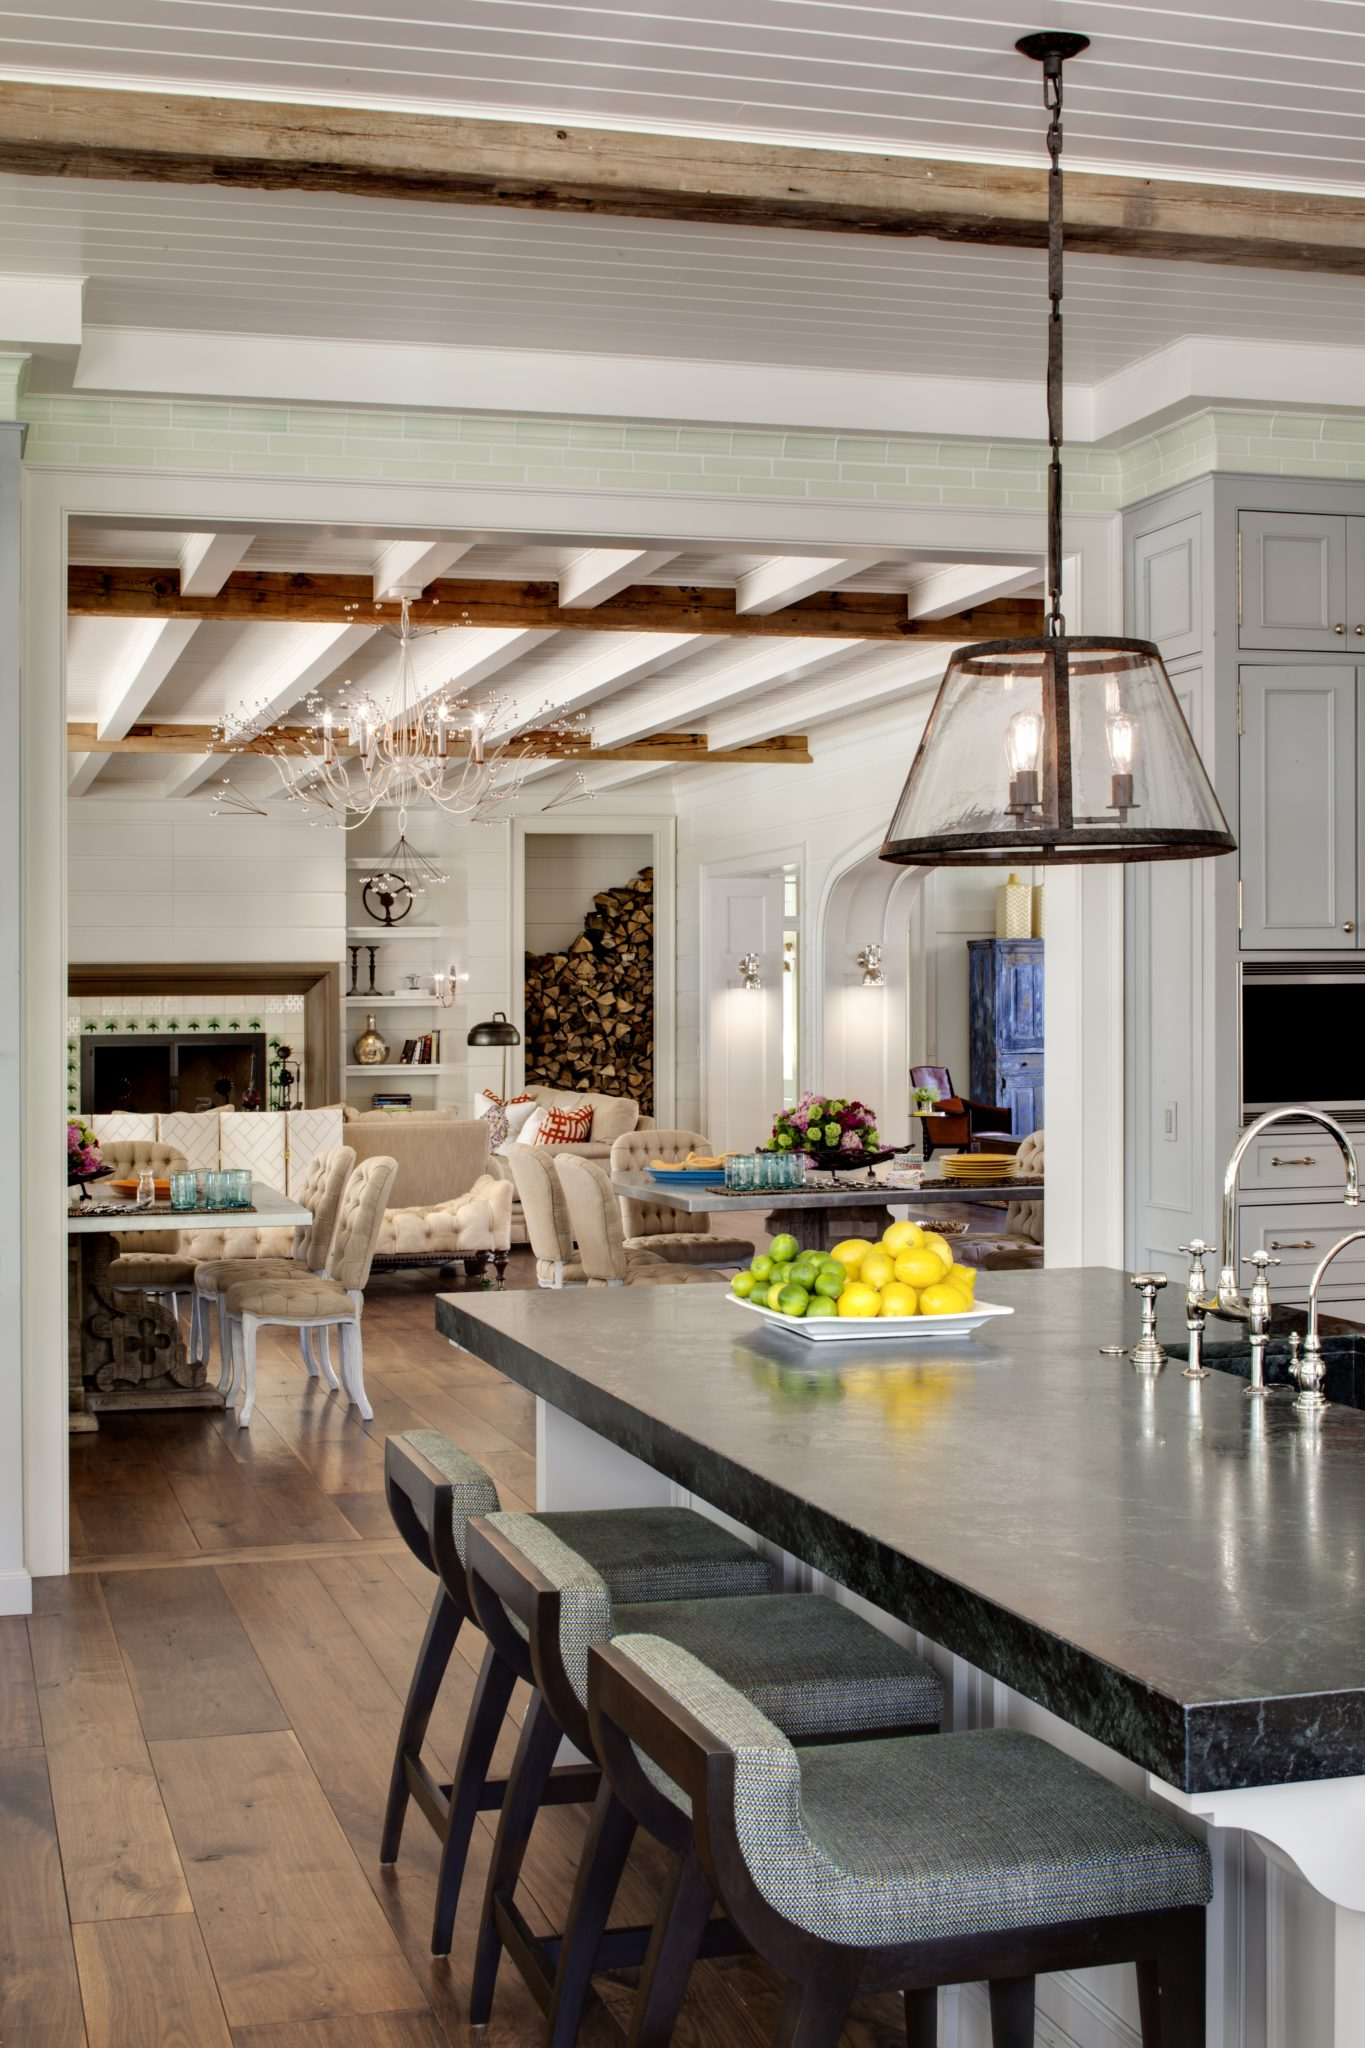 A classic stone island for traditional dining with family and friendsby Wade Weissmann Architecture Inc.